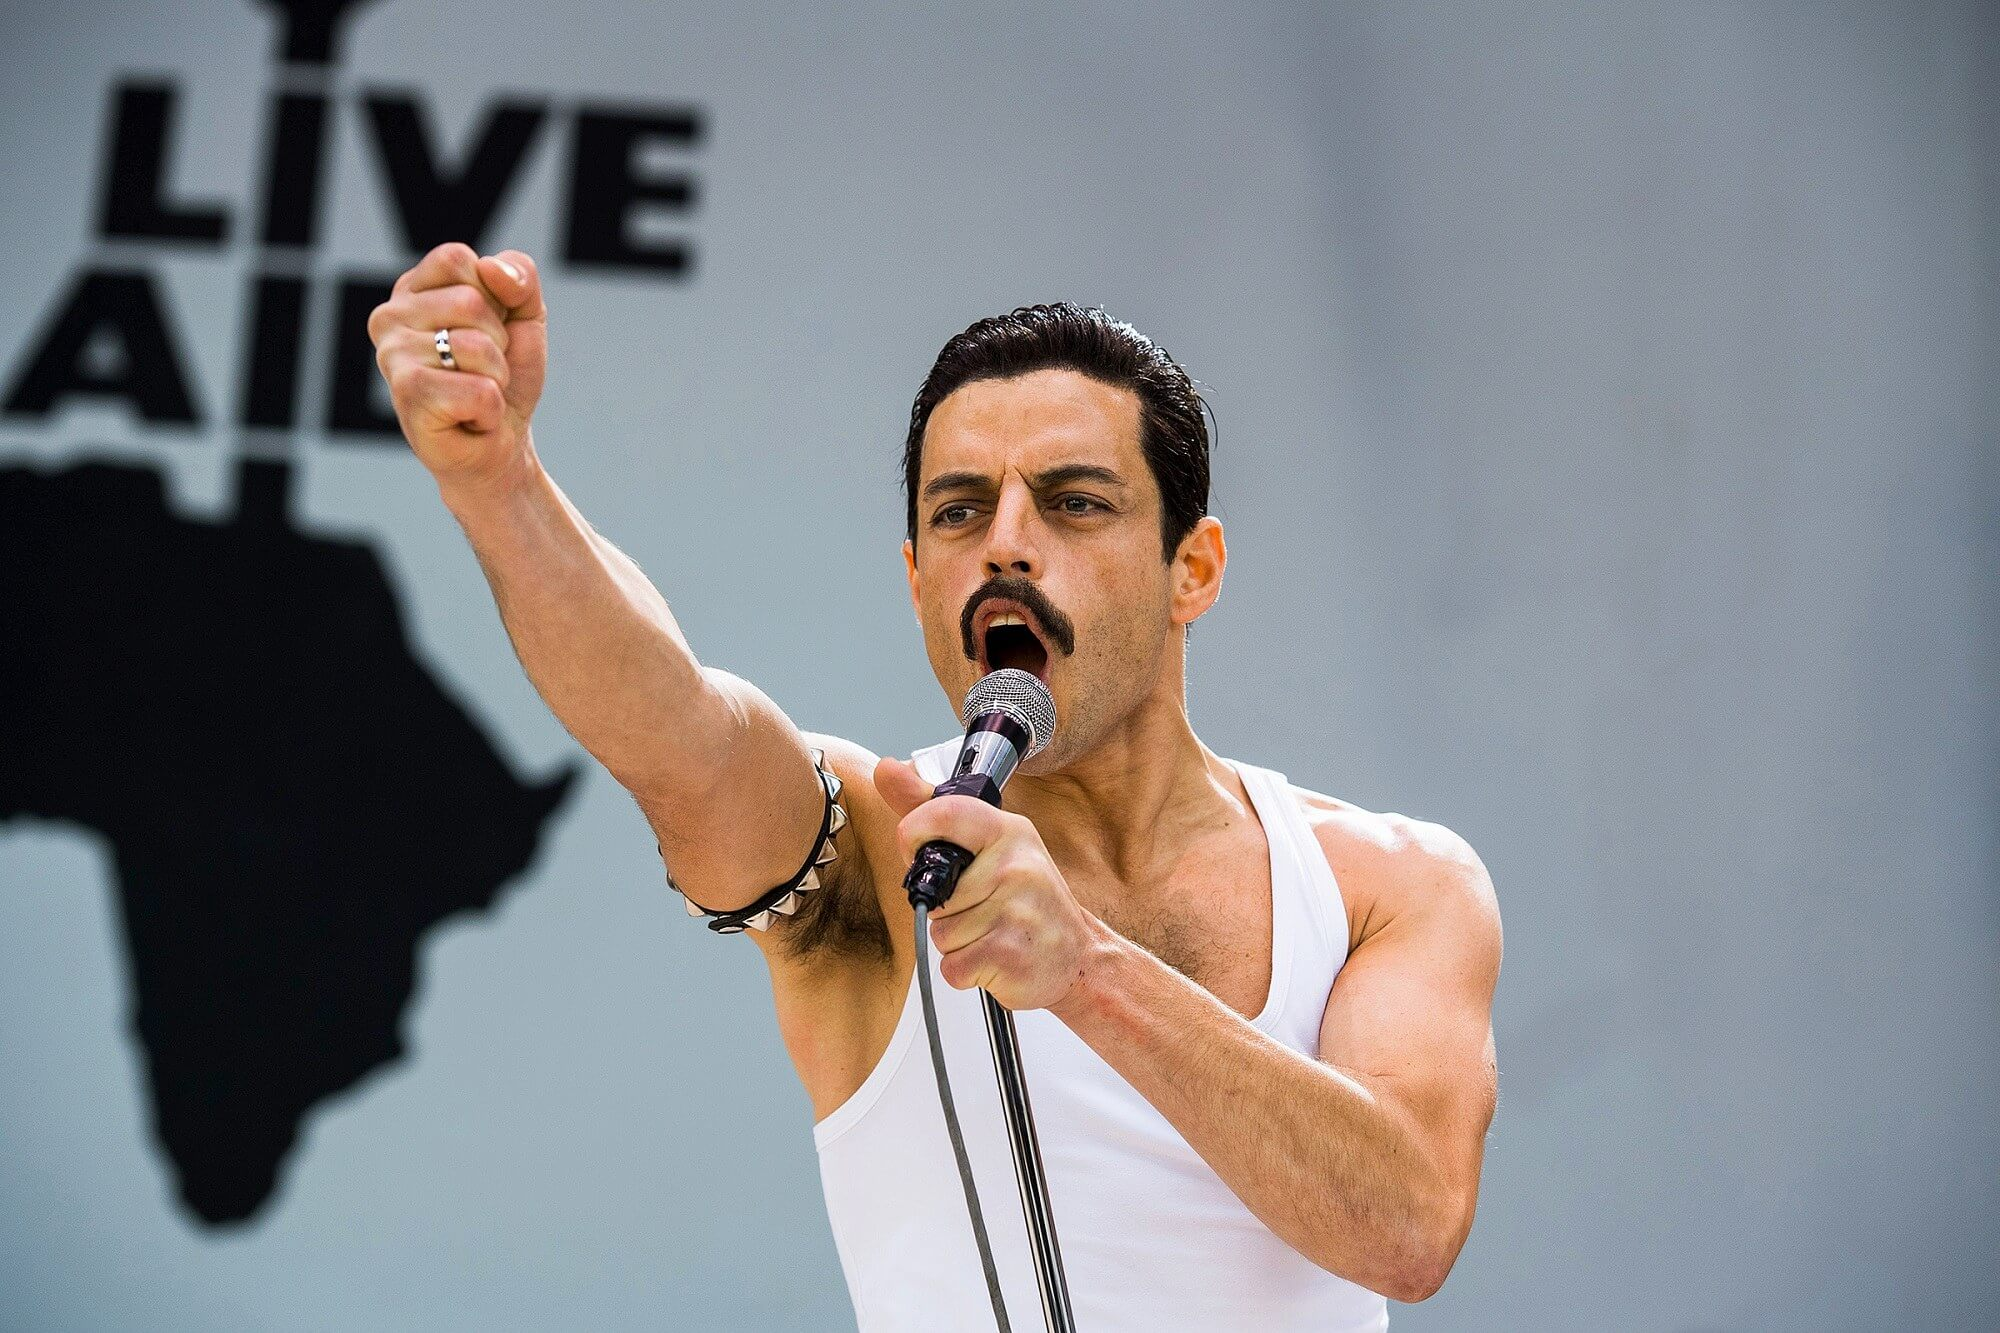 BOHEMIAN RHAPSODY 4K Ultra HD Blu-ray and Blu-ray Dated & Detailed